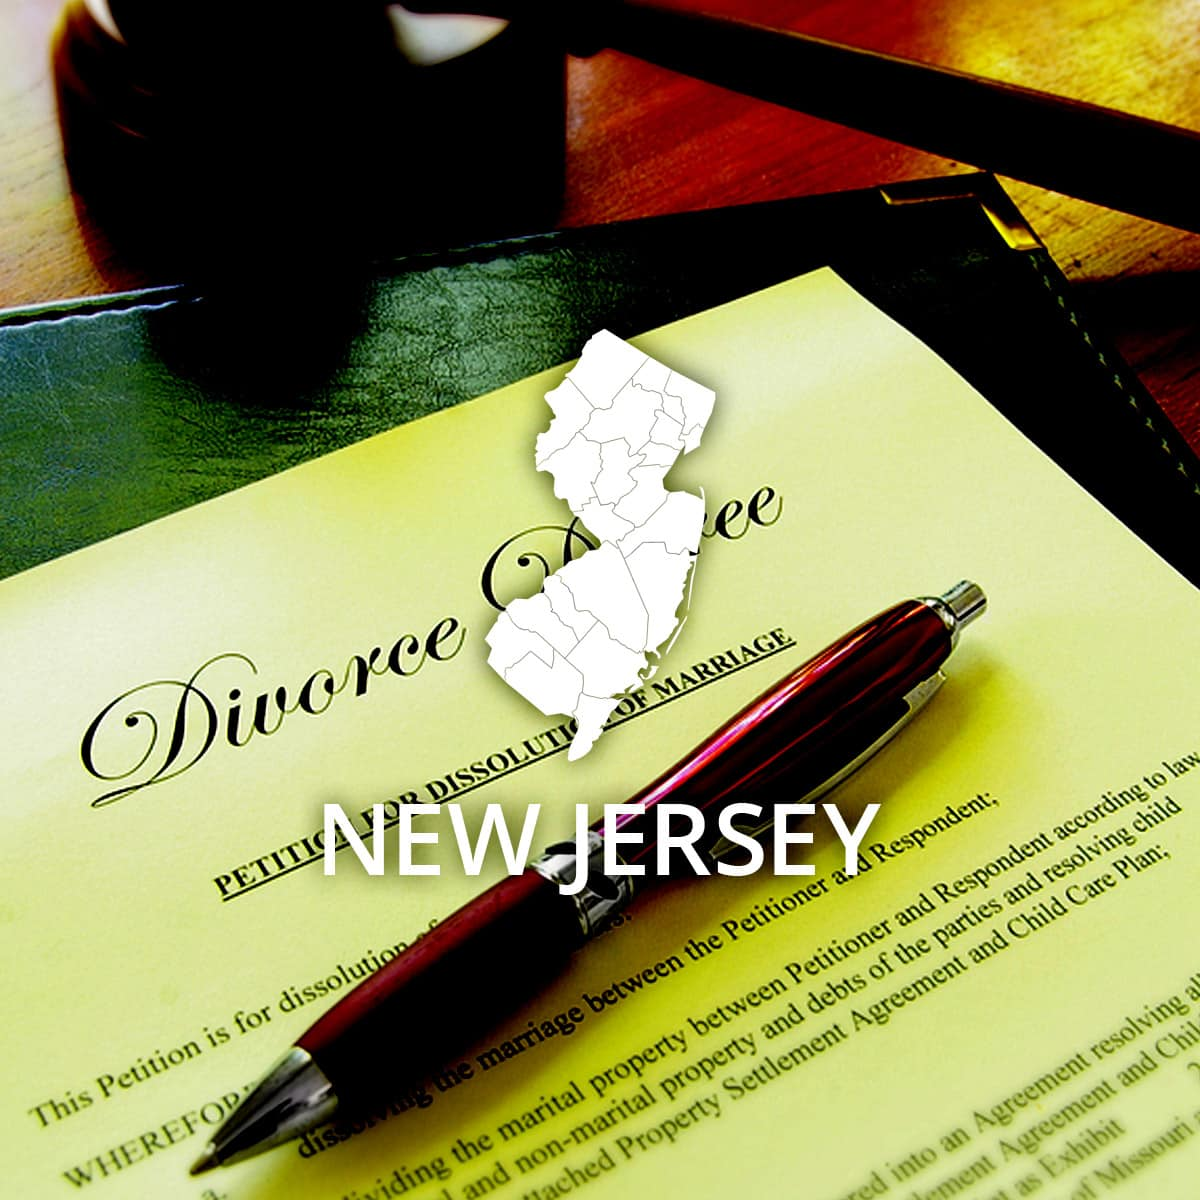 Where to Obtain a New Jersey Divorce Certificate